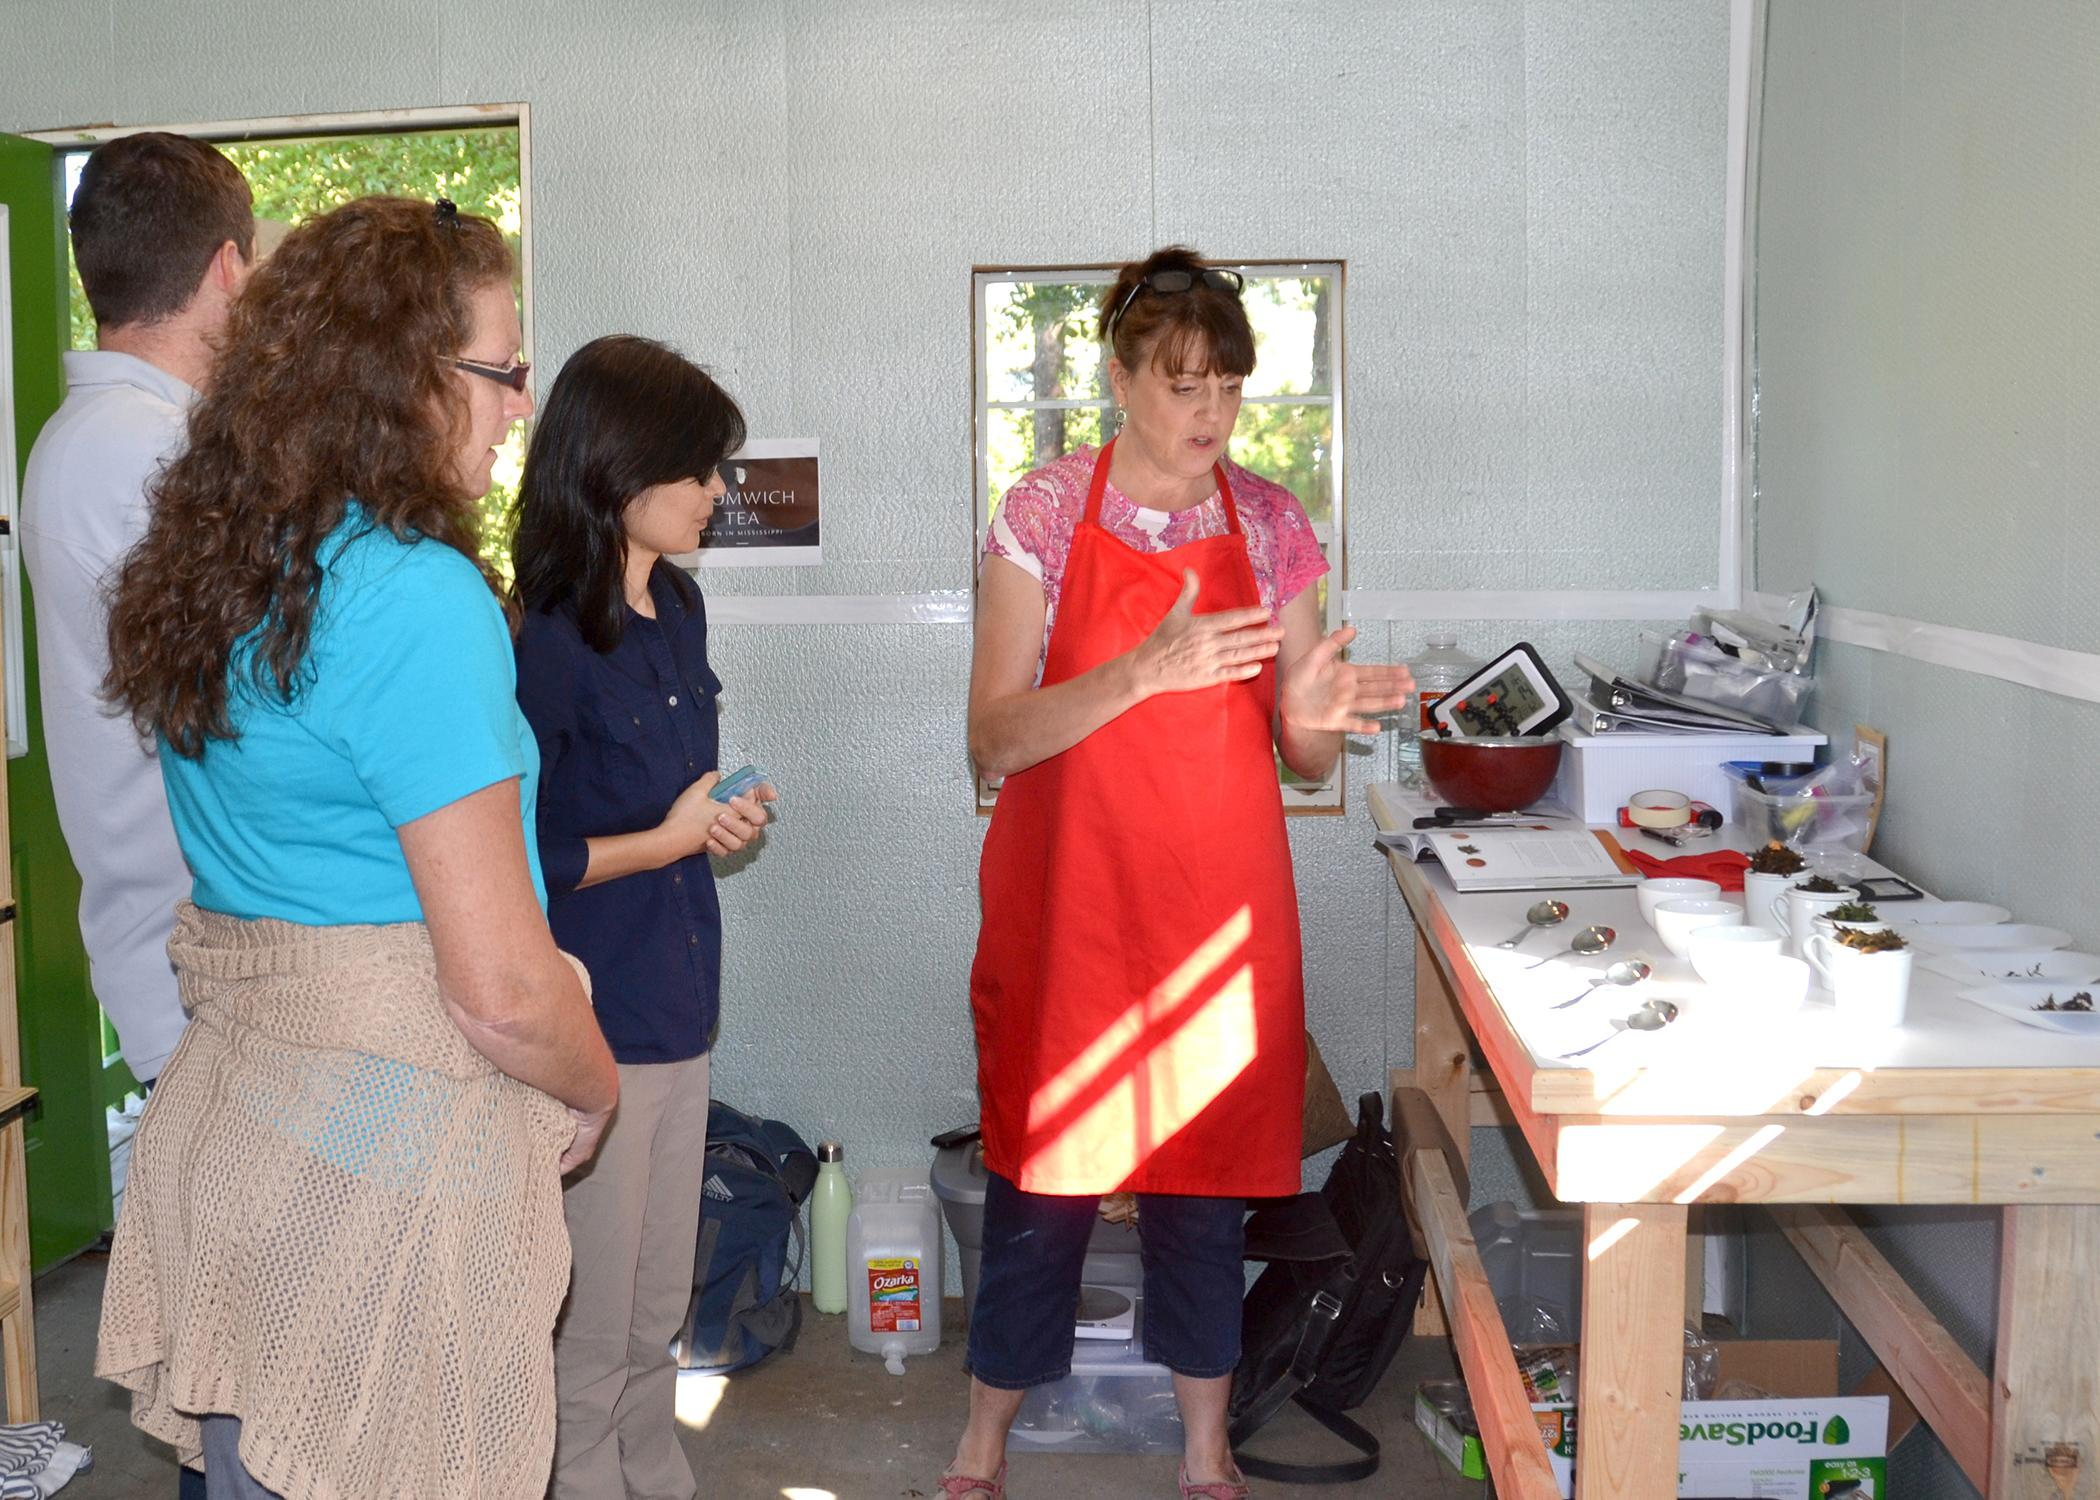 Donna Beliech, horticulture agent with the Mississippi State University Extension Service; Judson Lecompte, MSU research associate, and Guihong Bi, MSU associate research professor, listen as tea blender Beverly Wainwright explains the process of developing tea blends at The Great Mississippi Tea Company in Brookhaven, Mississippi, on Oct. 2, 2015. Wainwright is working with other tea consultants to make unique tea blends for the company. (Photo by MSU Ag Communications/Susan Collins-Smith)